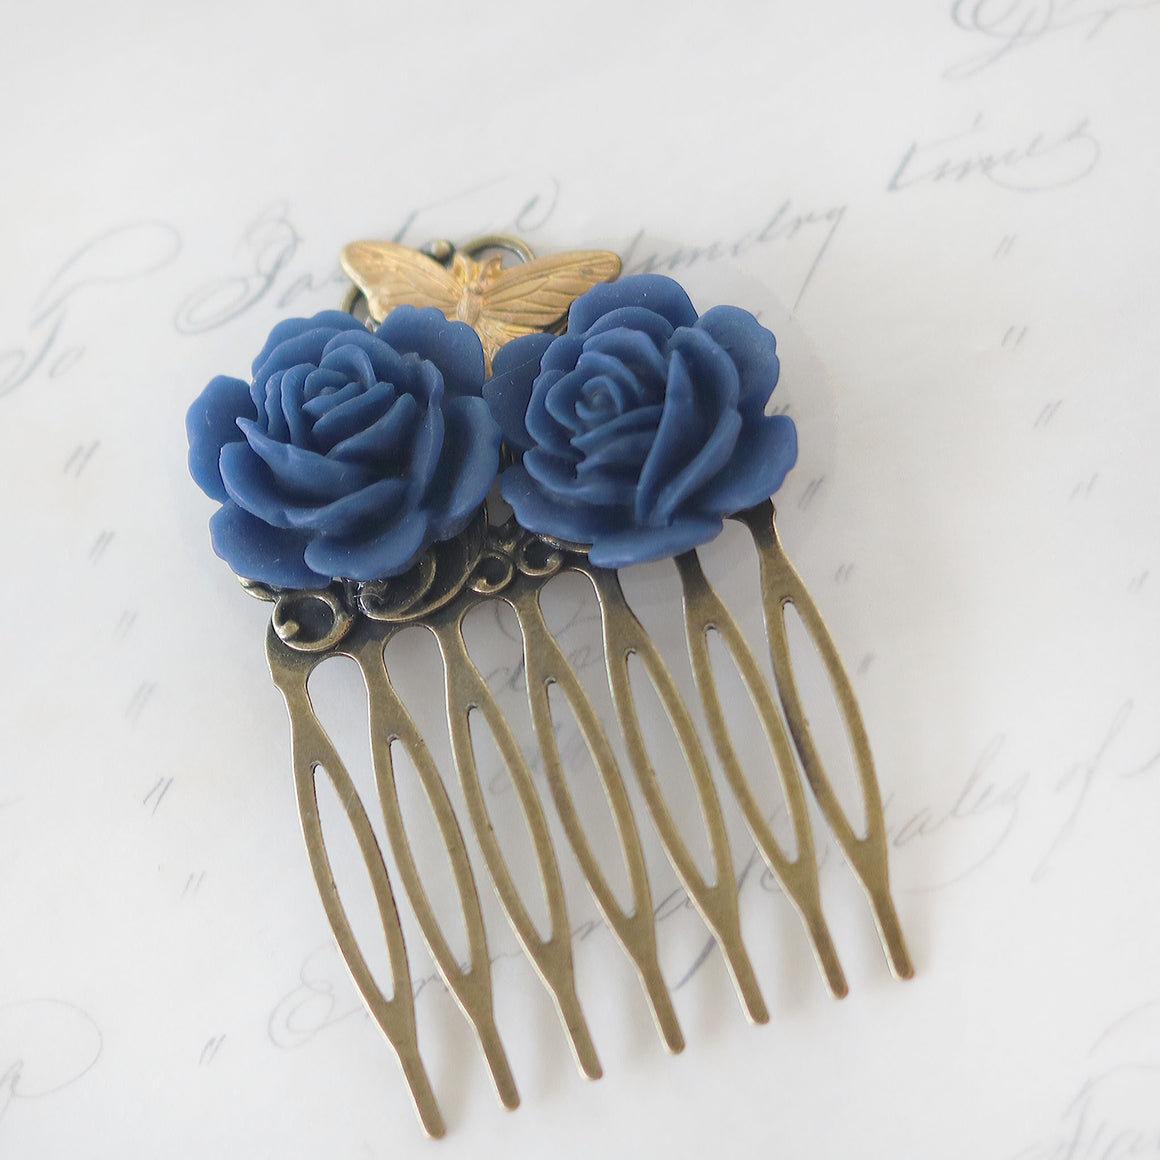 Small Decorative Hair Comb Navy Blue Roses and Butterfly